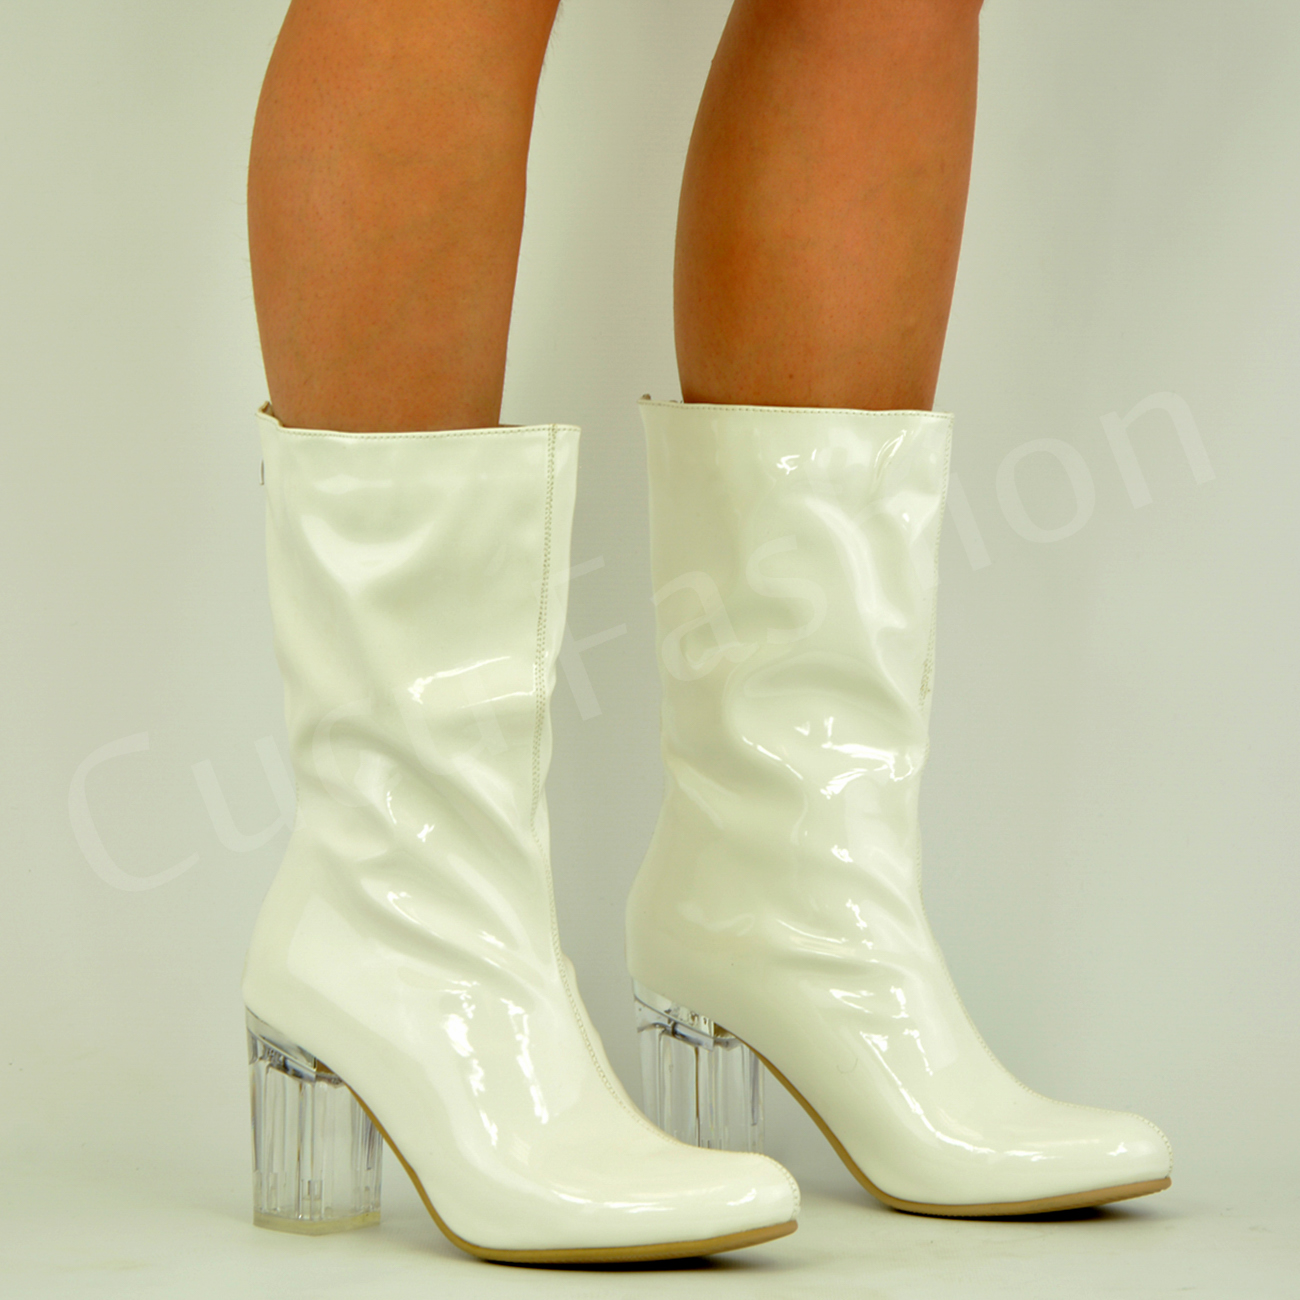 4da4b63b87 New Ankle Boots Womens Clear Block Heel Ladies Fashion Shoes Size UK ...